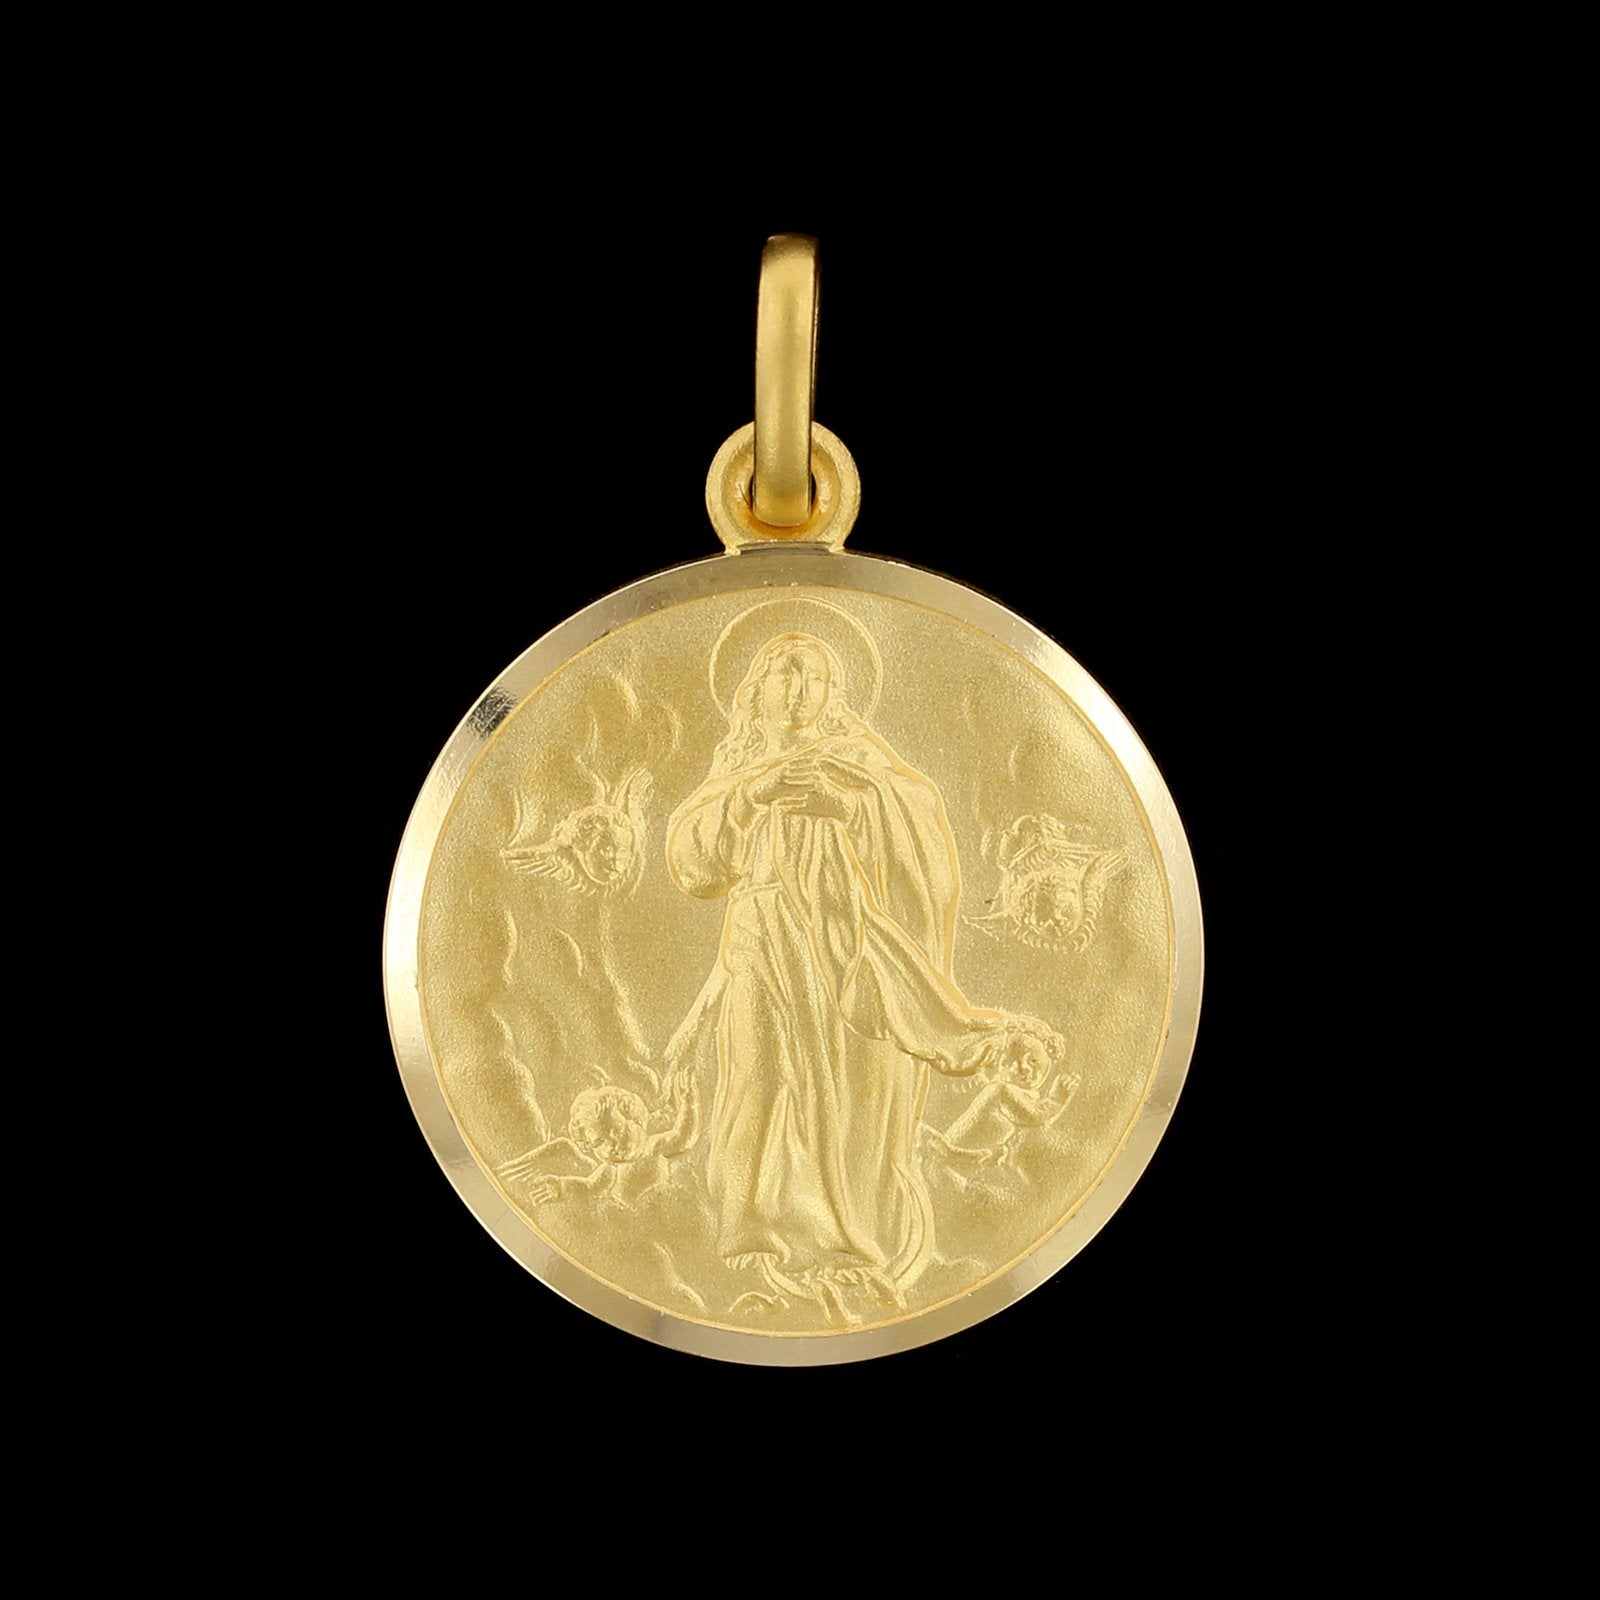 18K Yellow Gold Estate Medal of Mary Charm